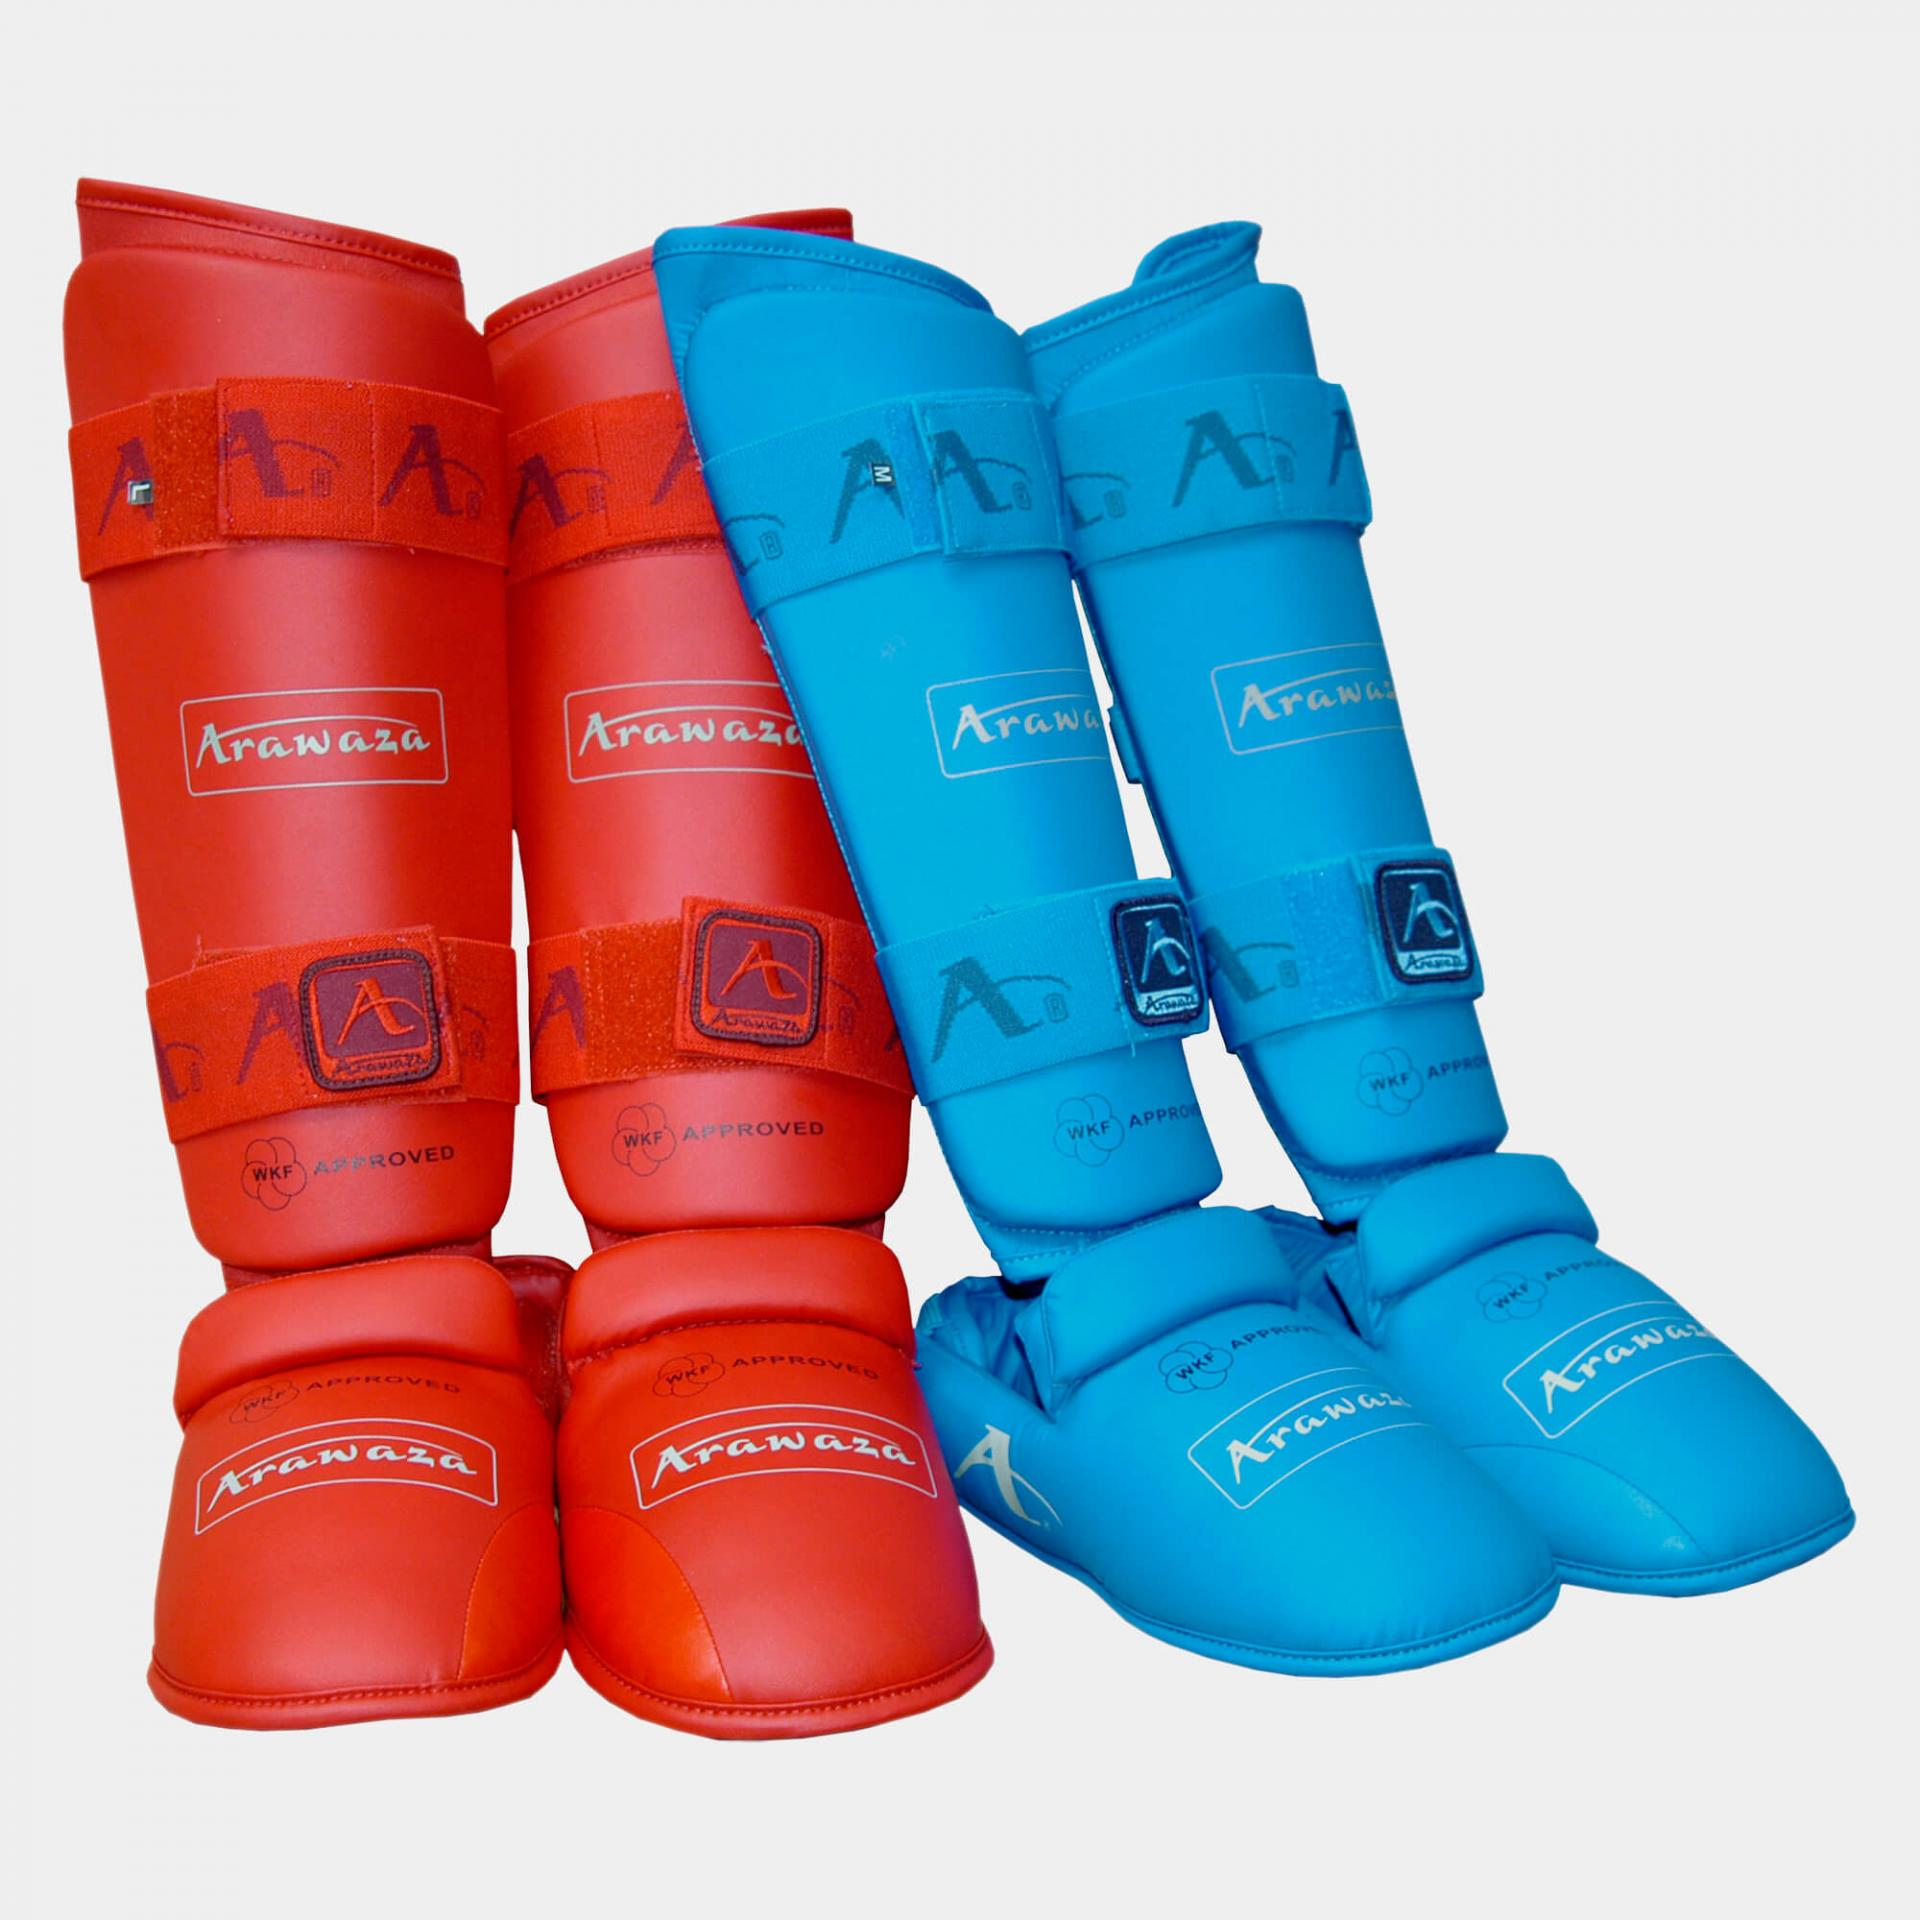 Shin pads approved wkf arawaza